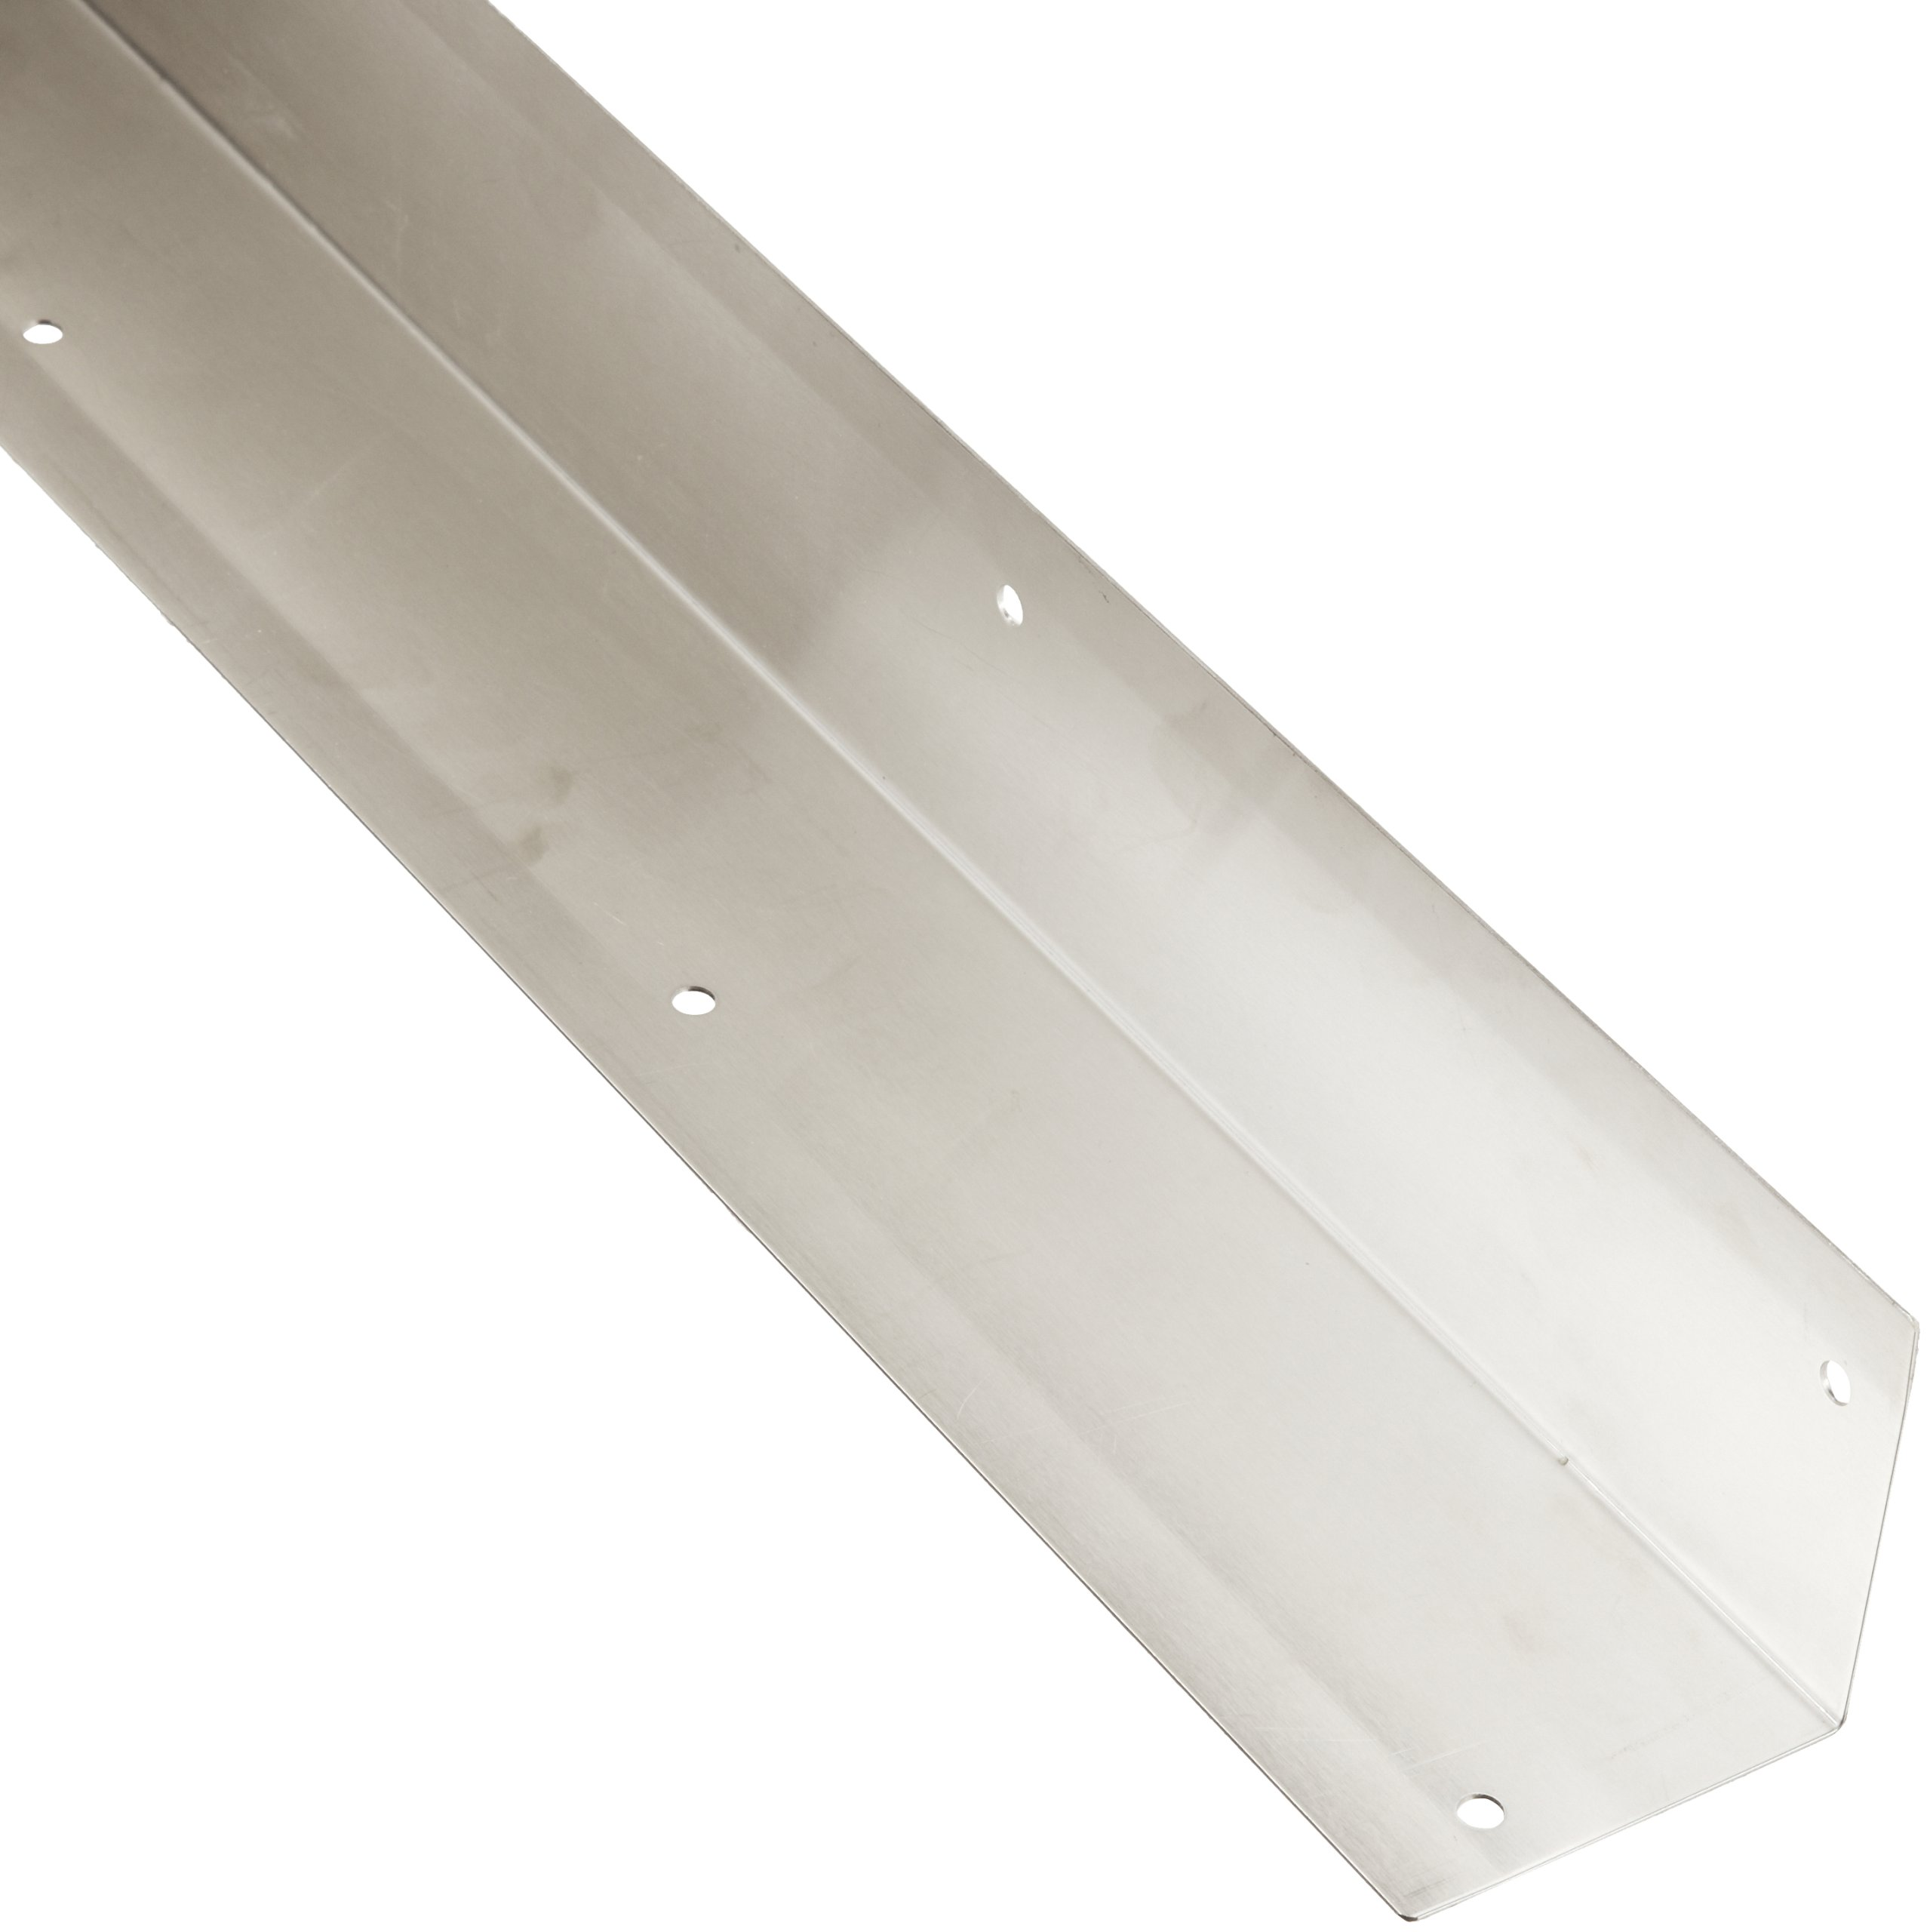 Rockwood 295.32D 3 X 3 X 40 Stainless Steel Square Corner Guard, 3'' x 3'' Edge, 40'' Height, Satin Finish